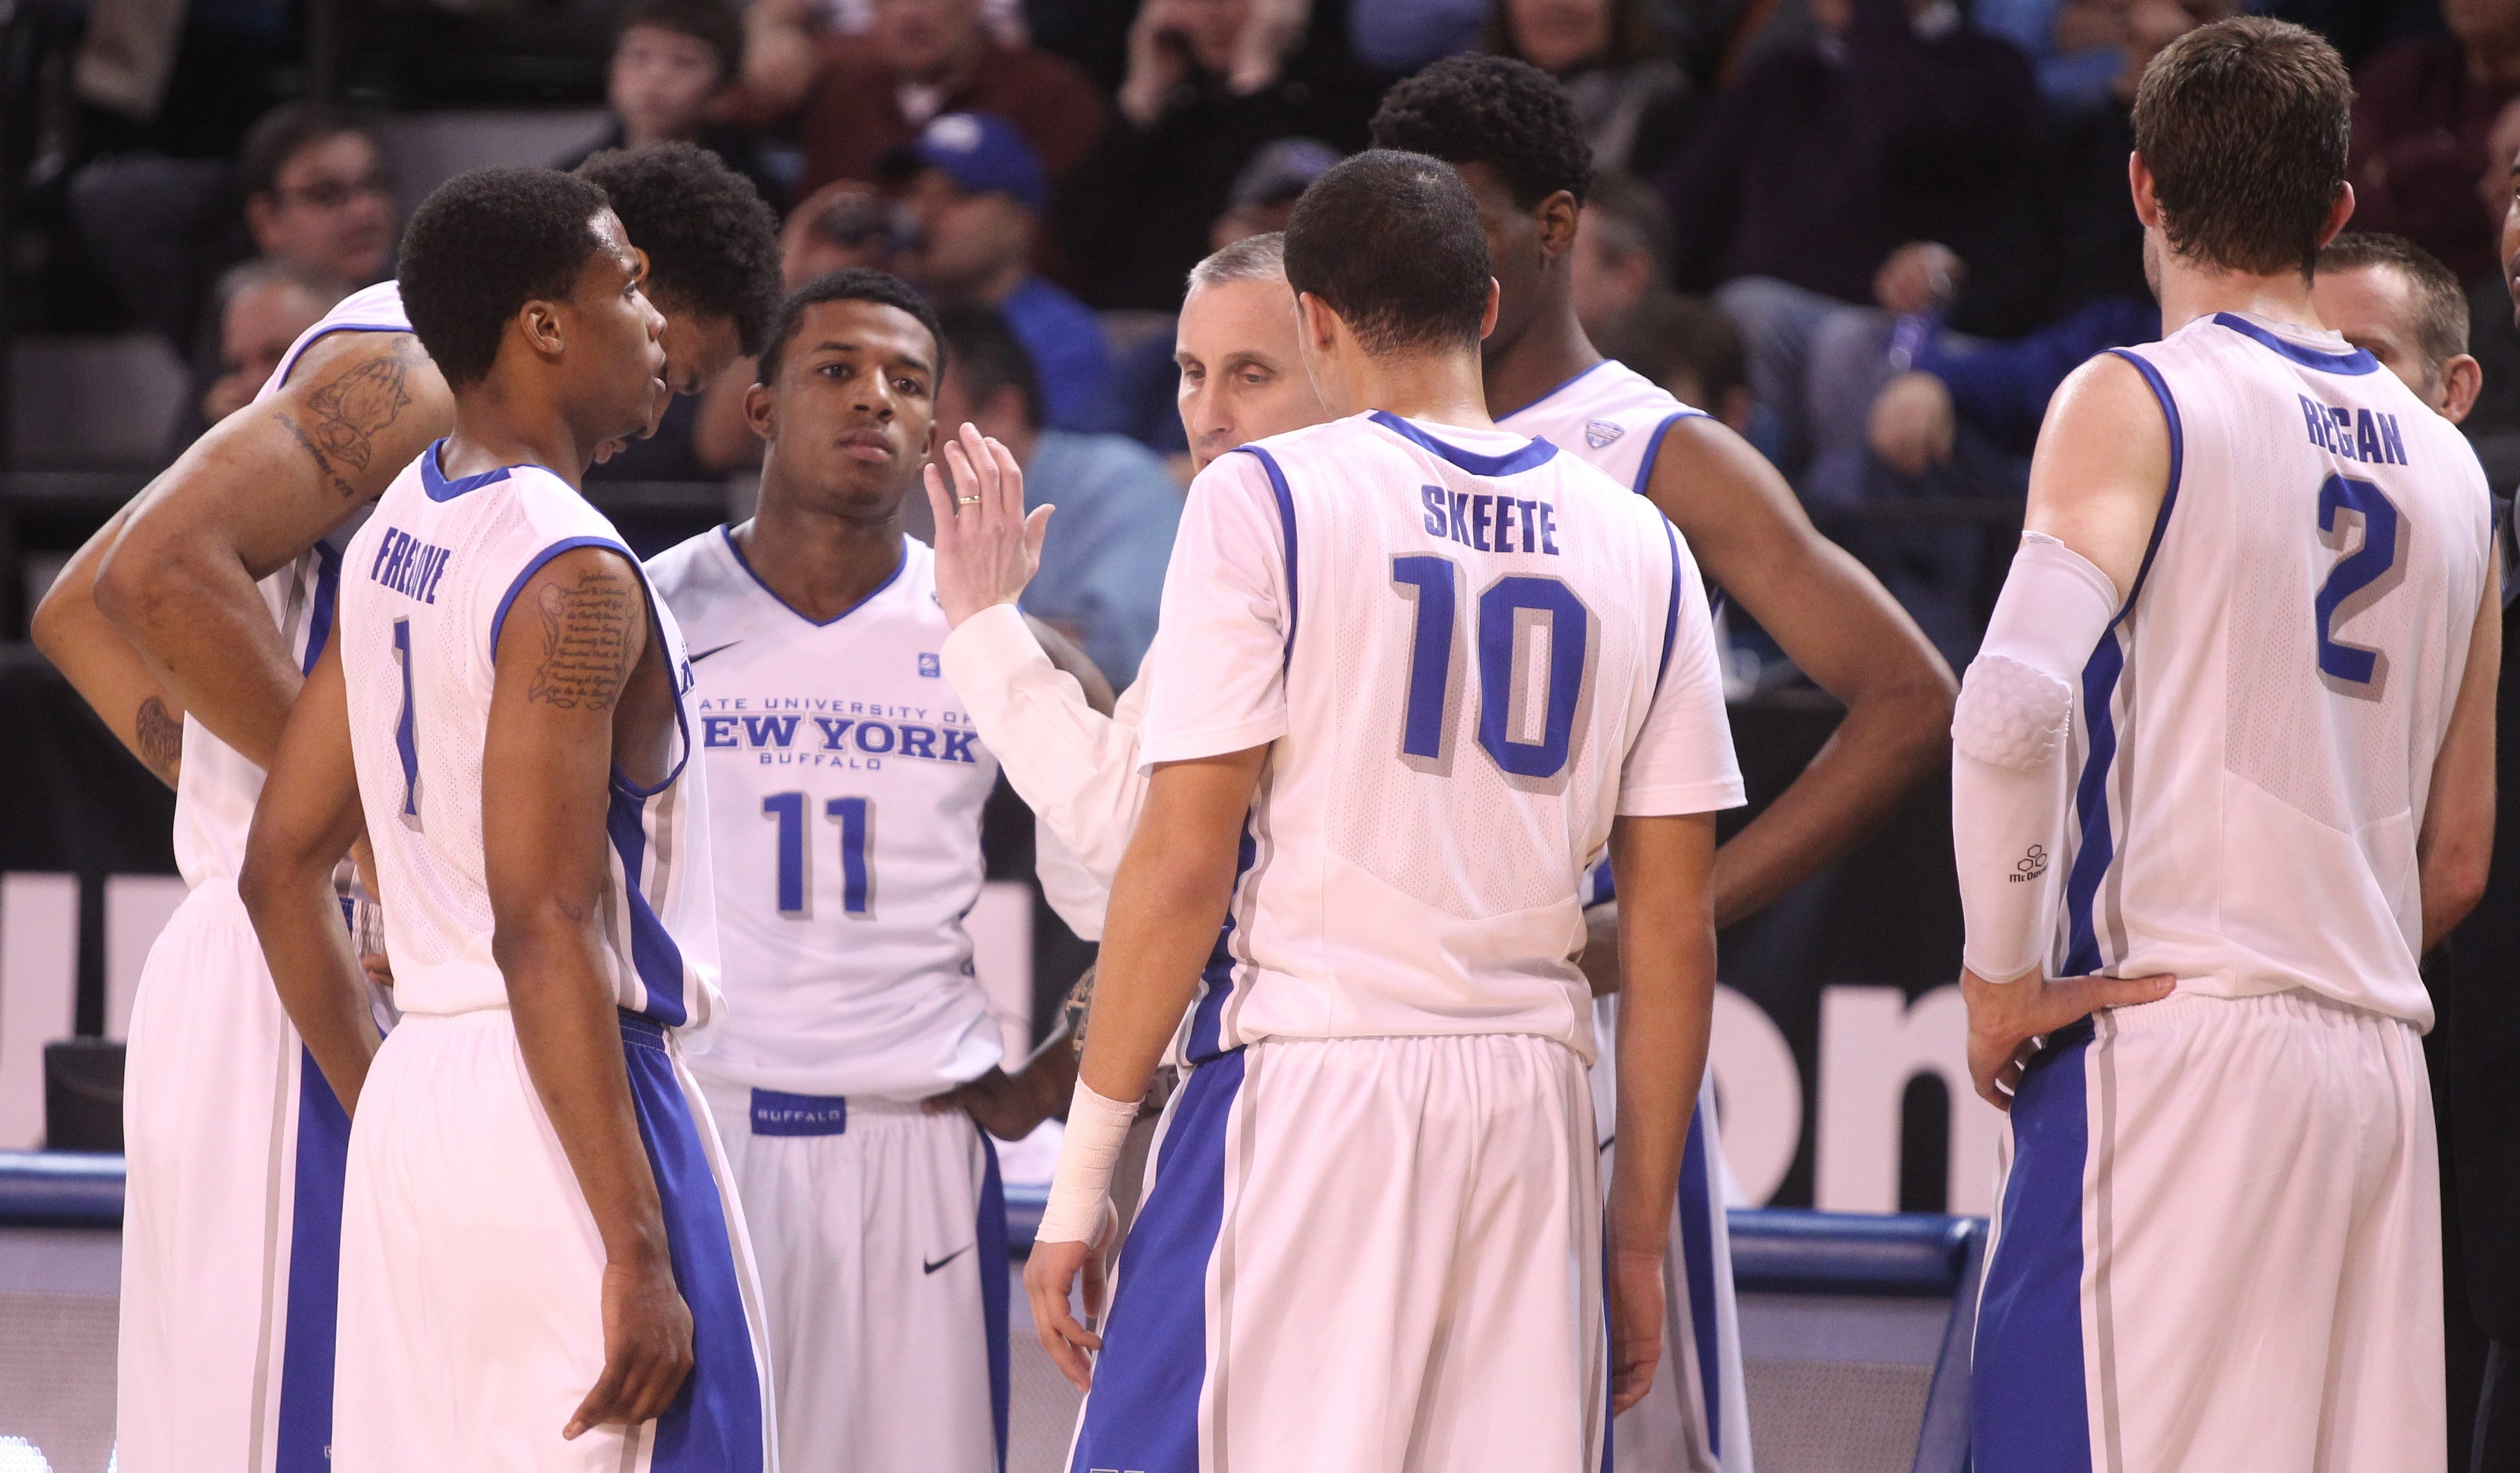 Bobby Hurley and the UB basketball team provided some exciting moments for area fans.